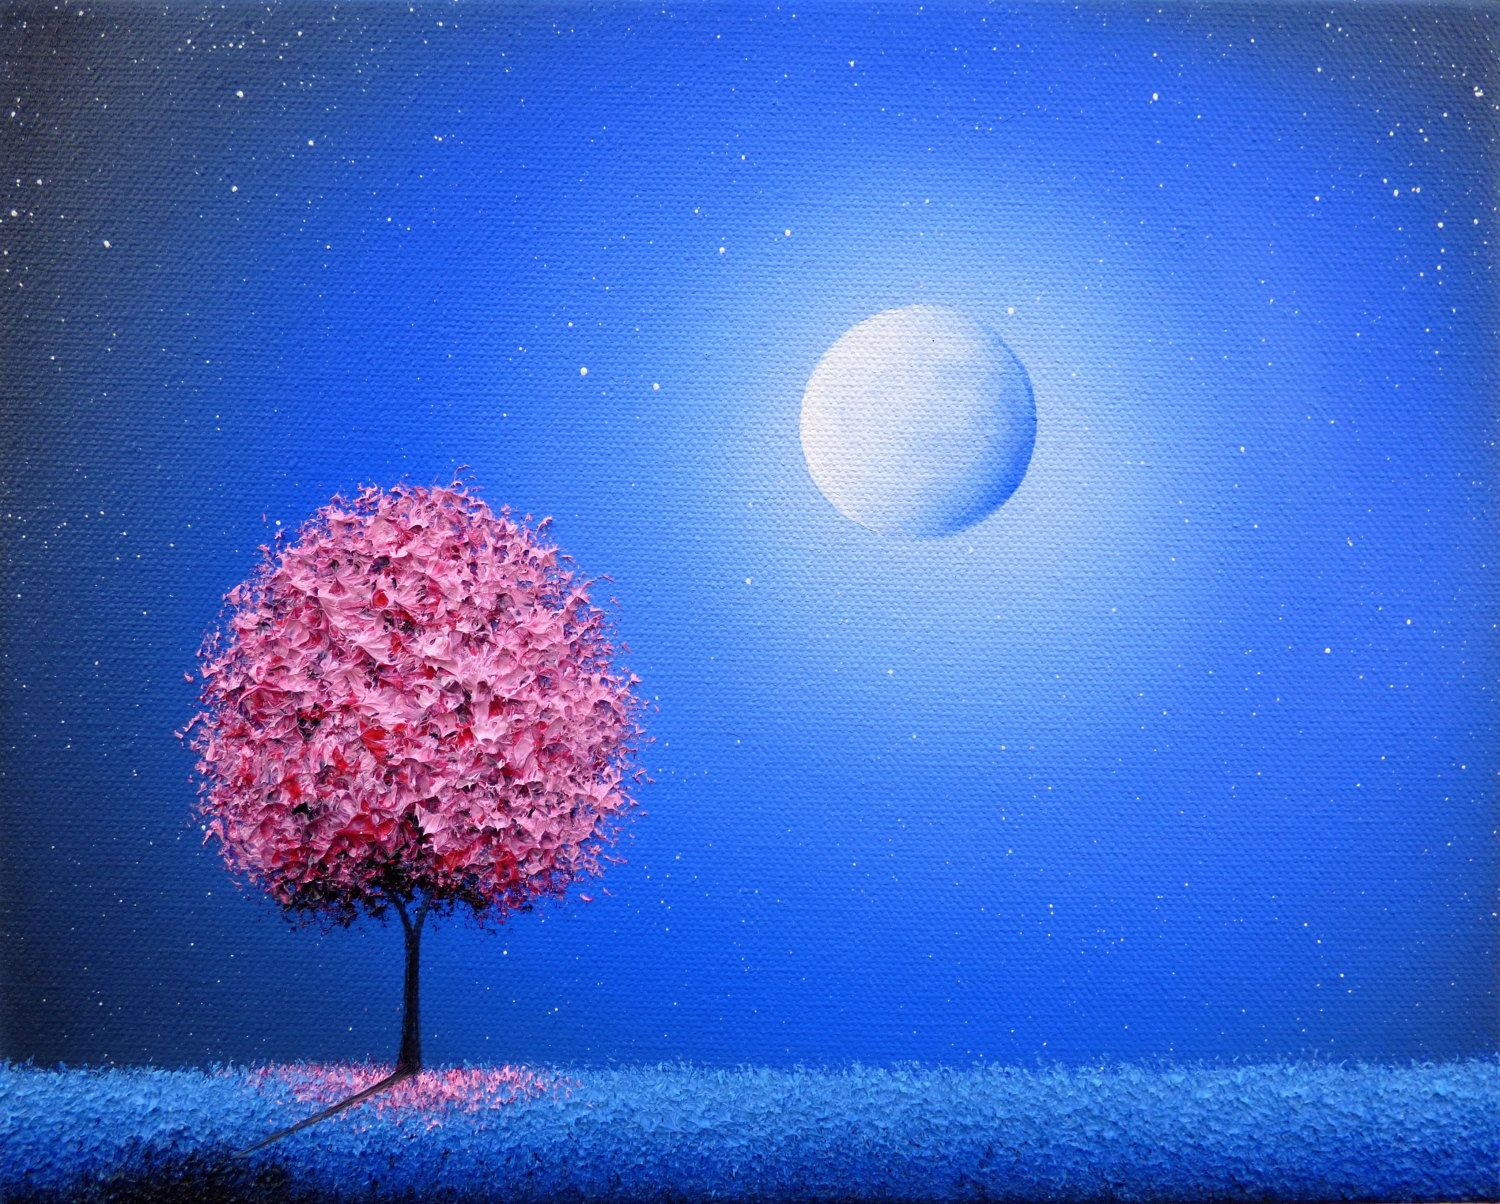 Original Oil Painting Cherry Blossom Tree Painting Pink Tree Landscape Painting Full Moon Night Art Text Tree Art Original Oil Painting Landscape Paintings